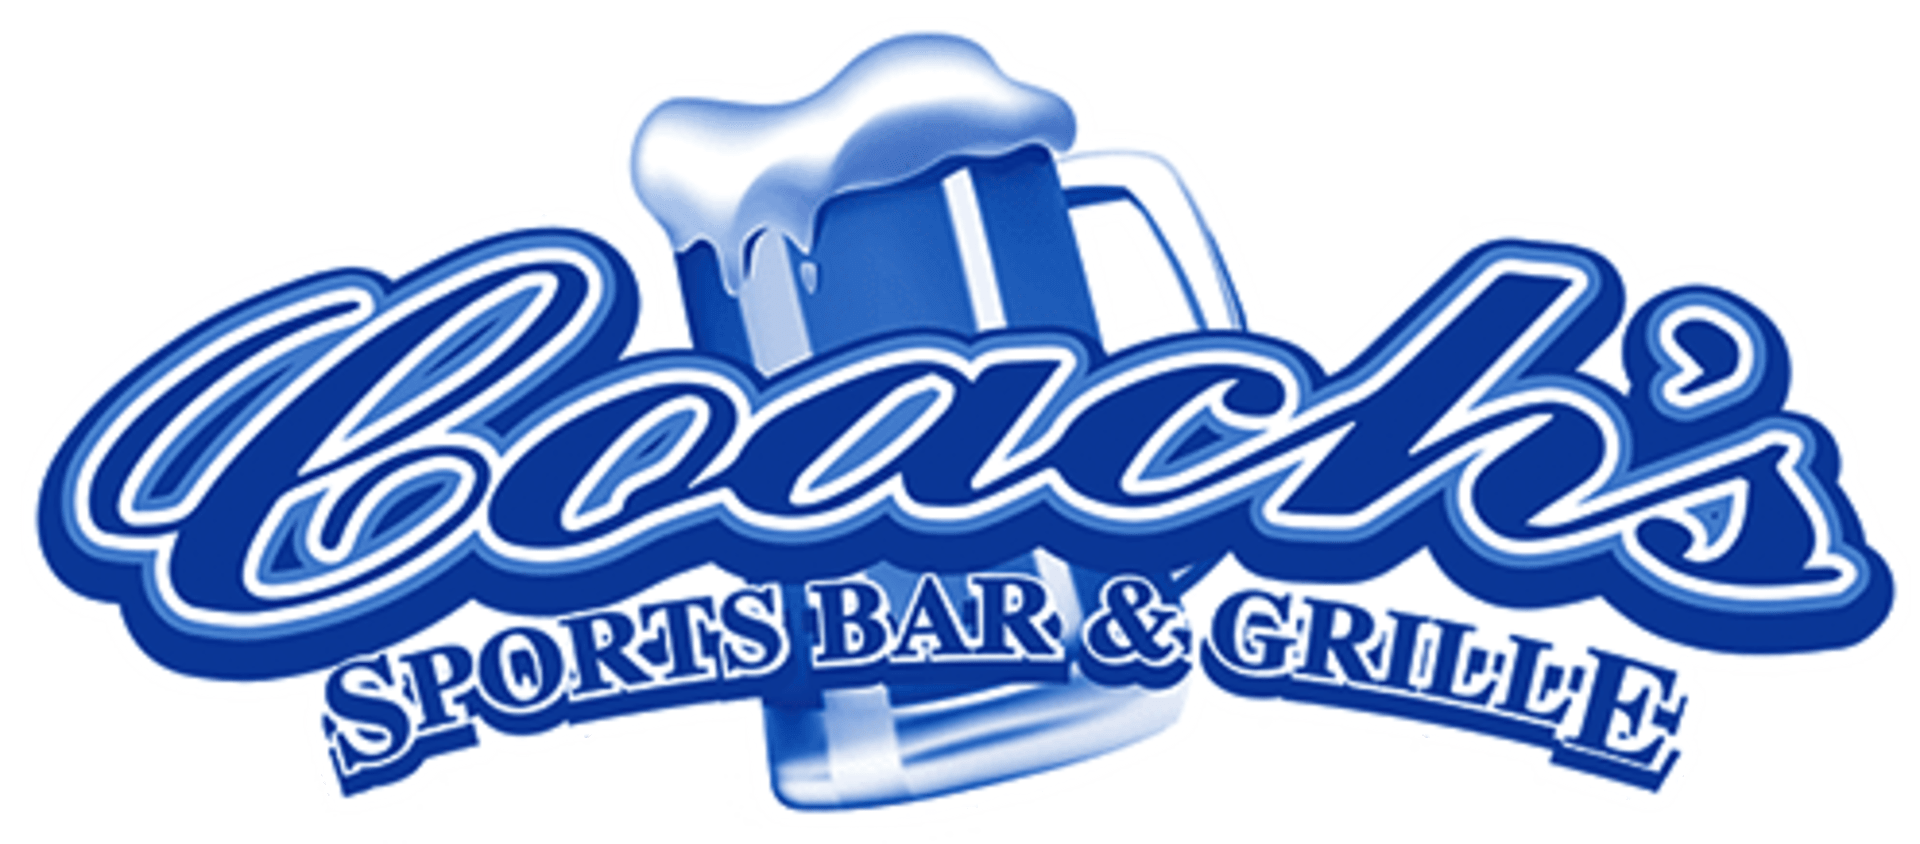 coach's sports bar and grill logo